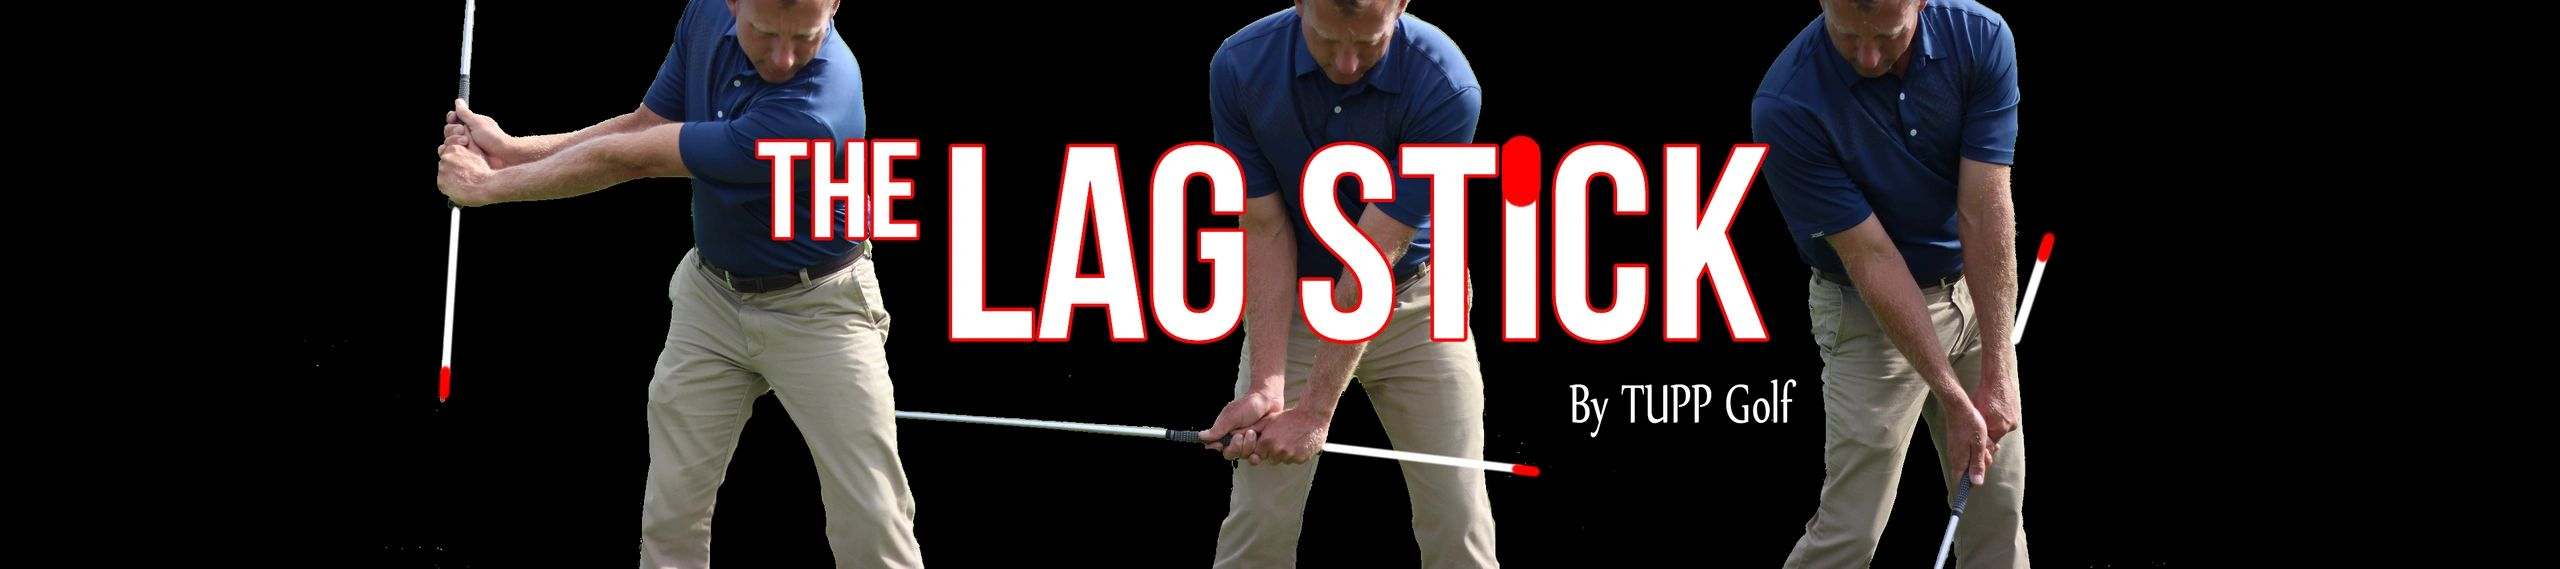 the lag stick golf training aid golf golf shop golf. Black Bedroom Furniture Sets. Home Design Ideas